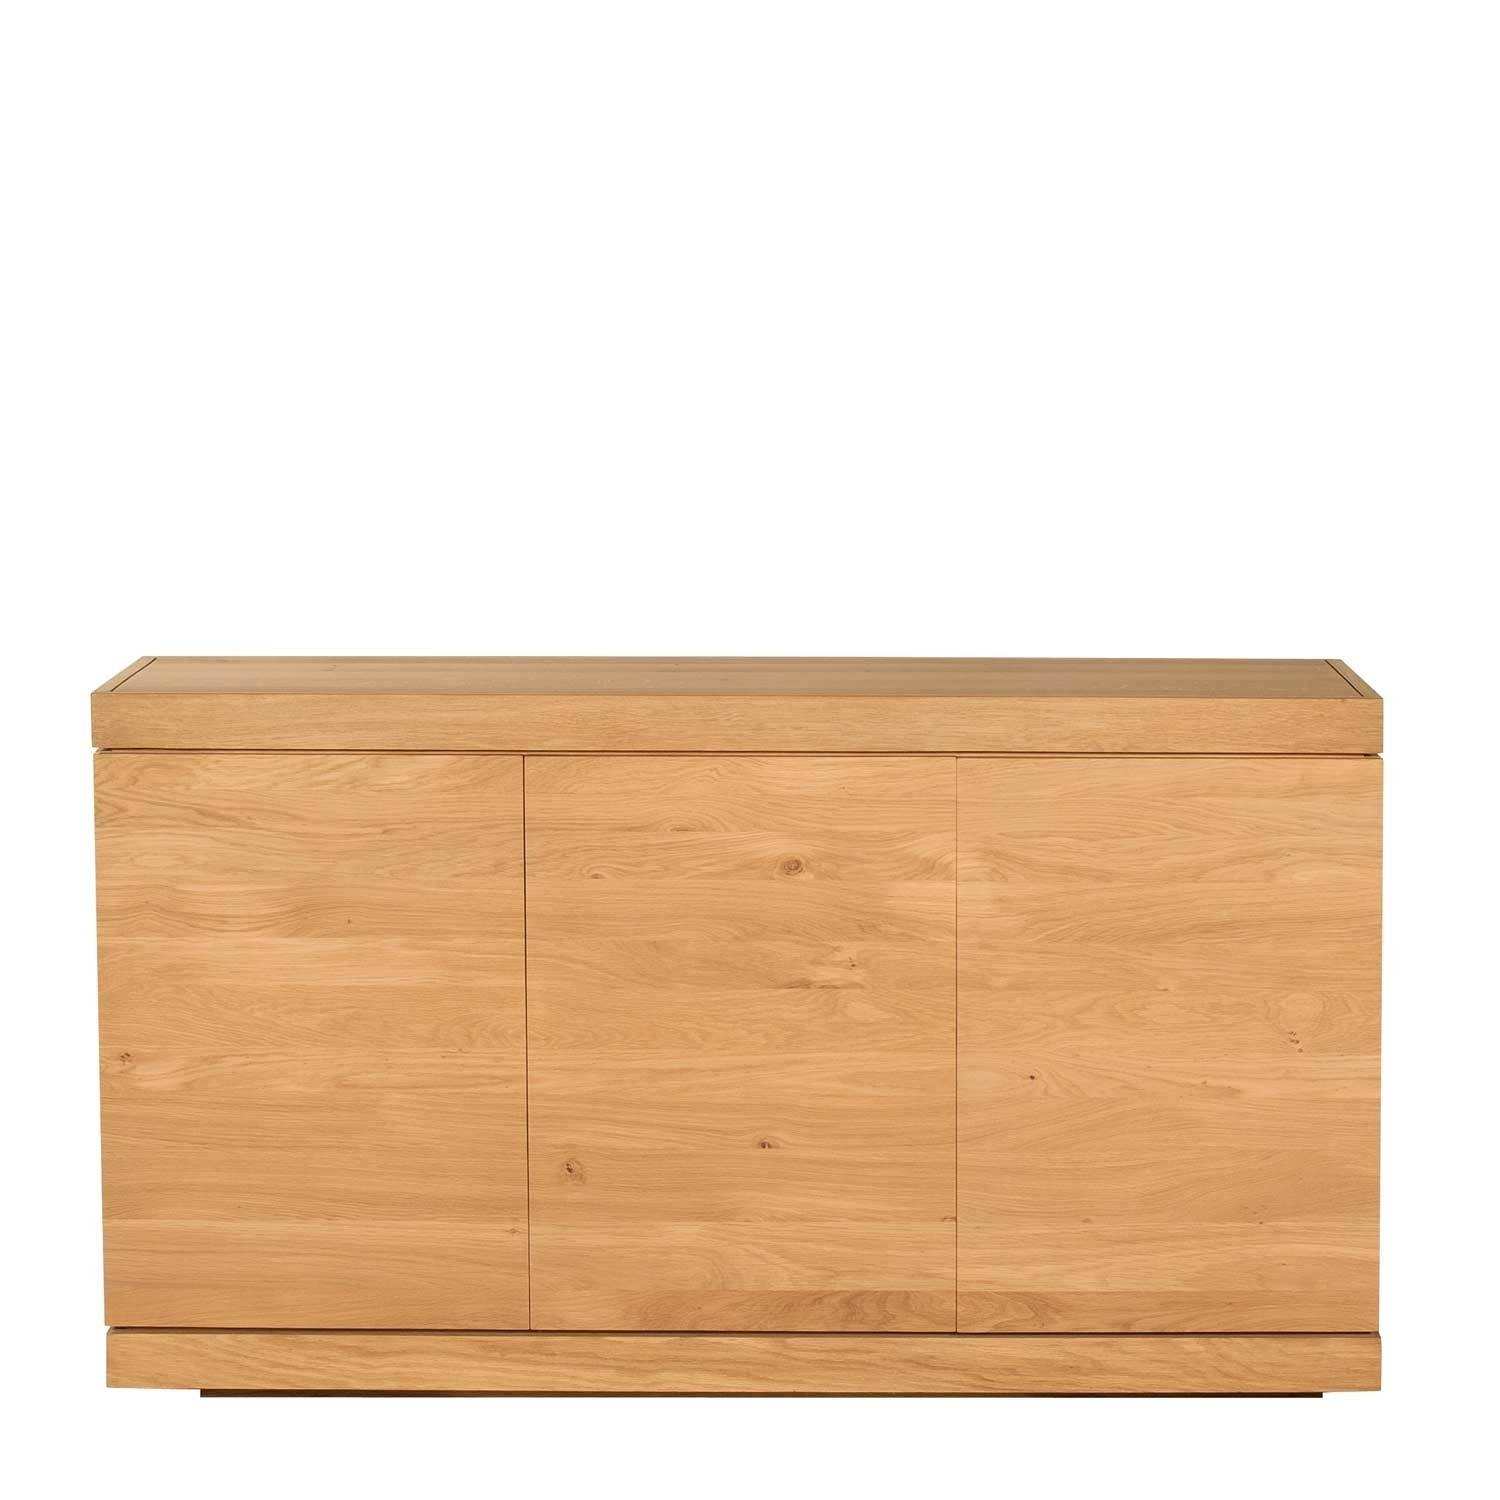 Ethnicraft Burger Oak Sideboard 150Cm - 3 Doors | Solid Wood Furniture in Light Oak Sideboards (Image 5 of 30)